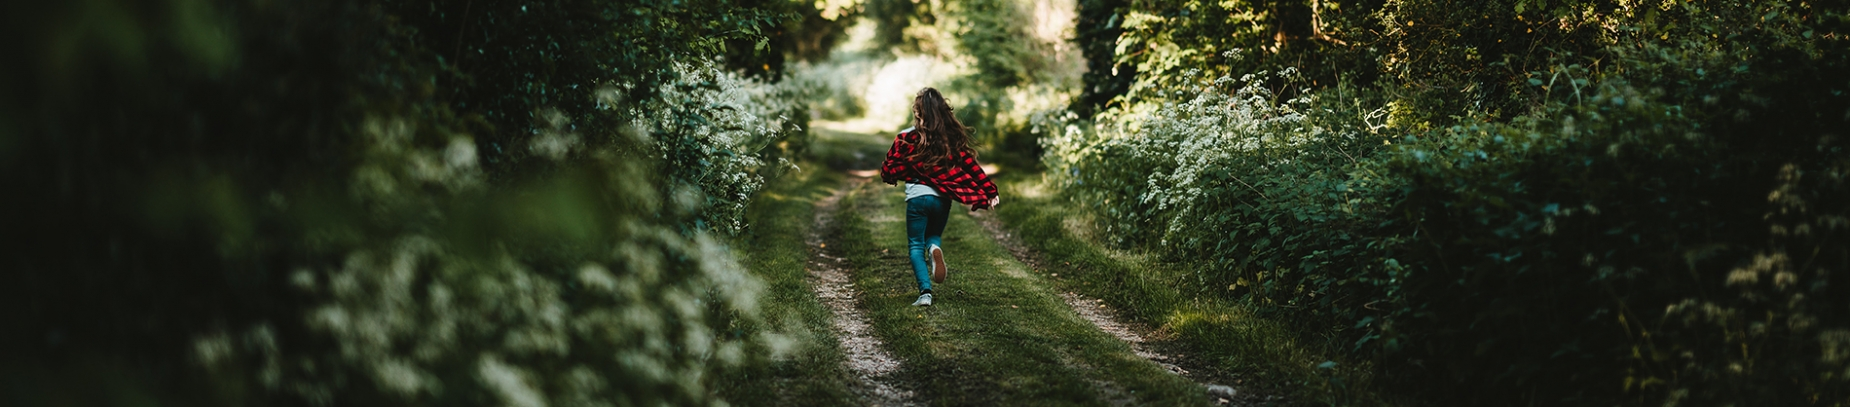 A girl in a red top running down a path into a forest